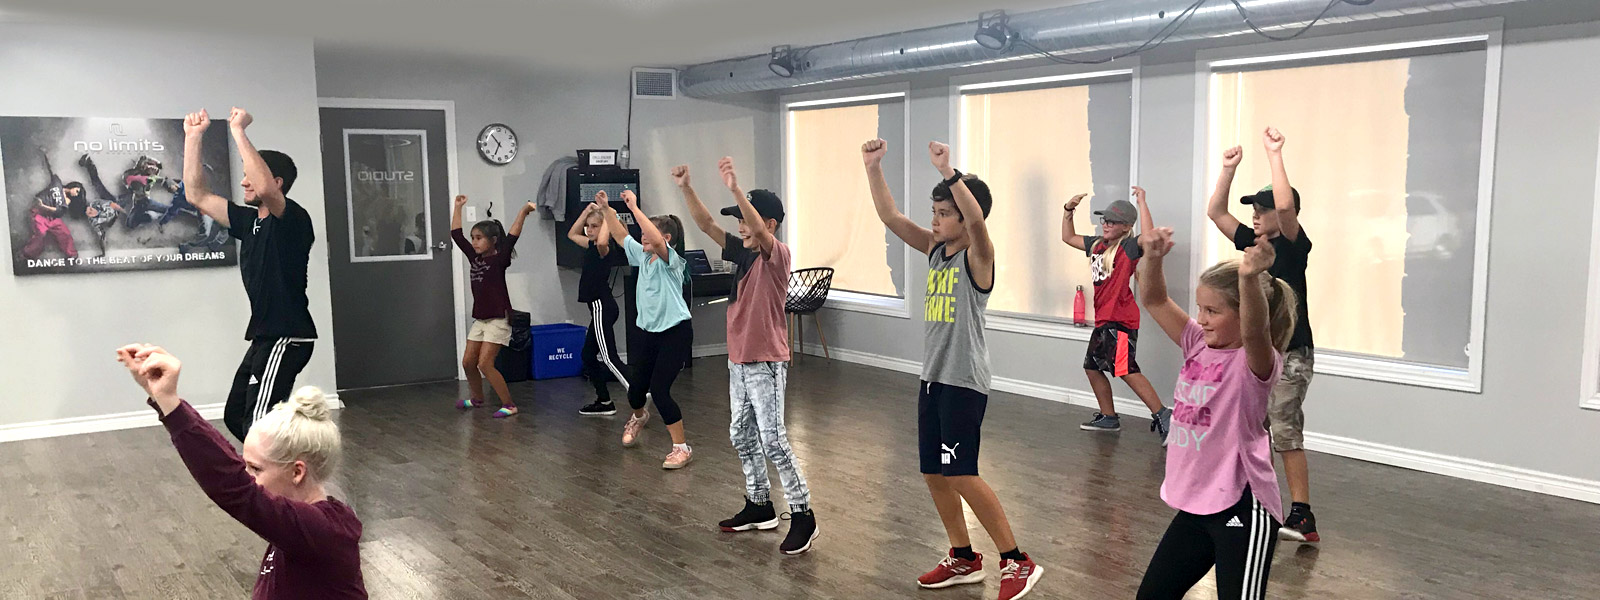 Dance class at No Limits Youth, Belleville Quinte